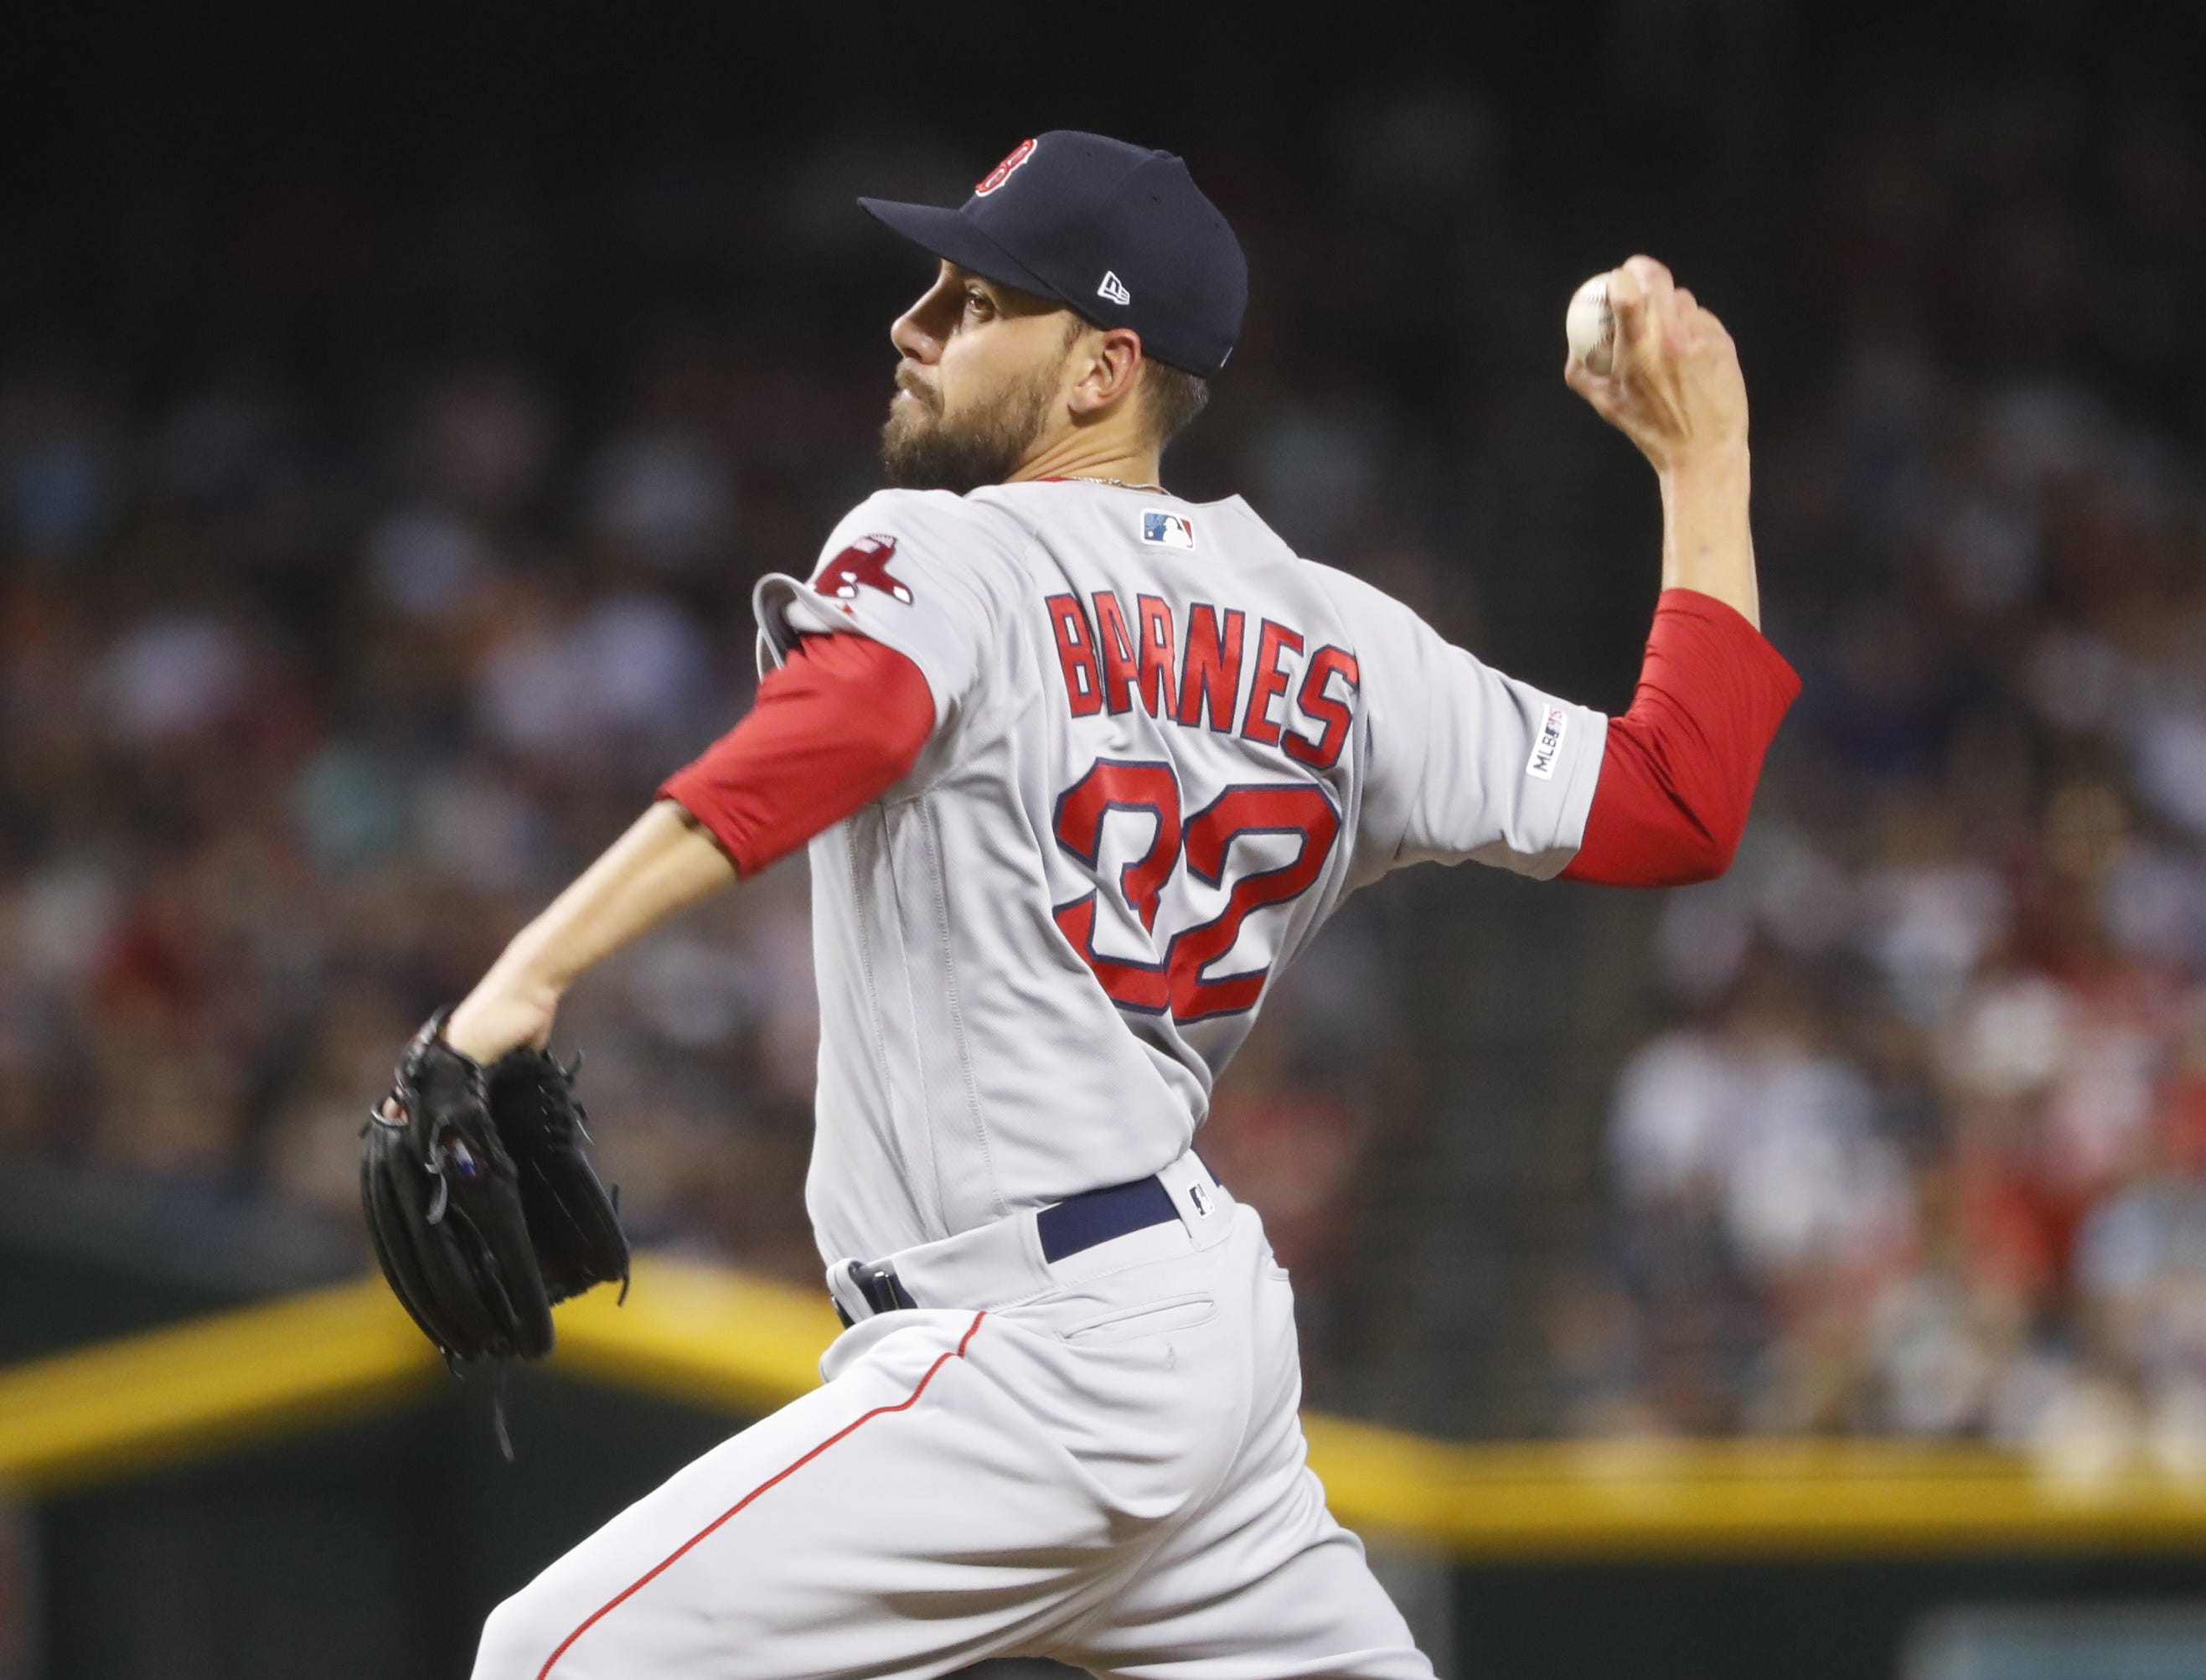 Red Sox Matt Barnes (32) pitches against the Diamondbacks during the eighth inning at Chase Field in Phoenix, Ariz. on April 7, 2019.